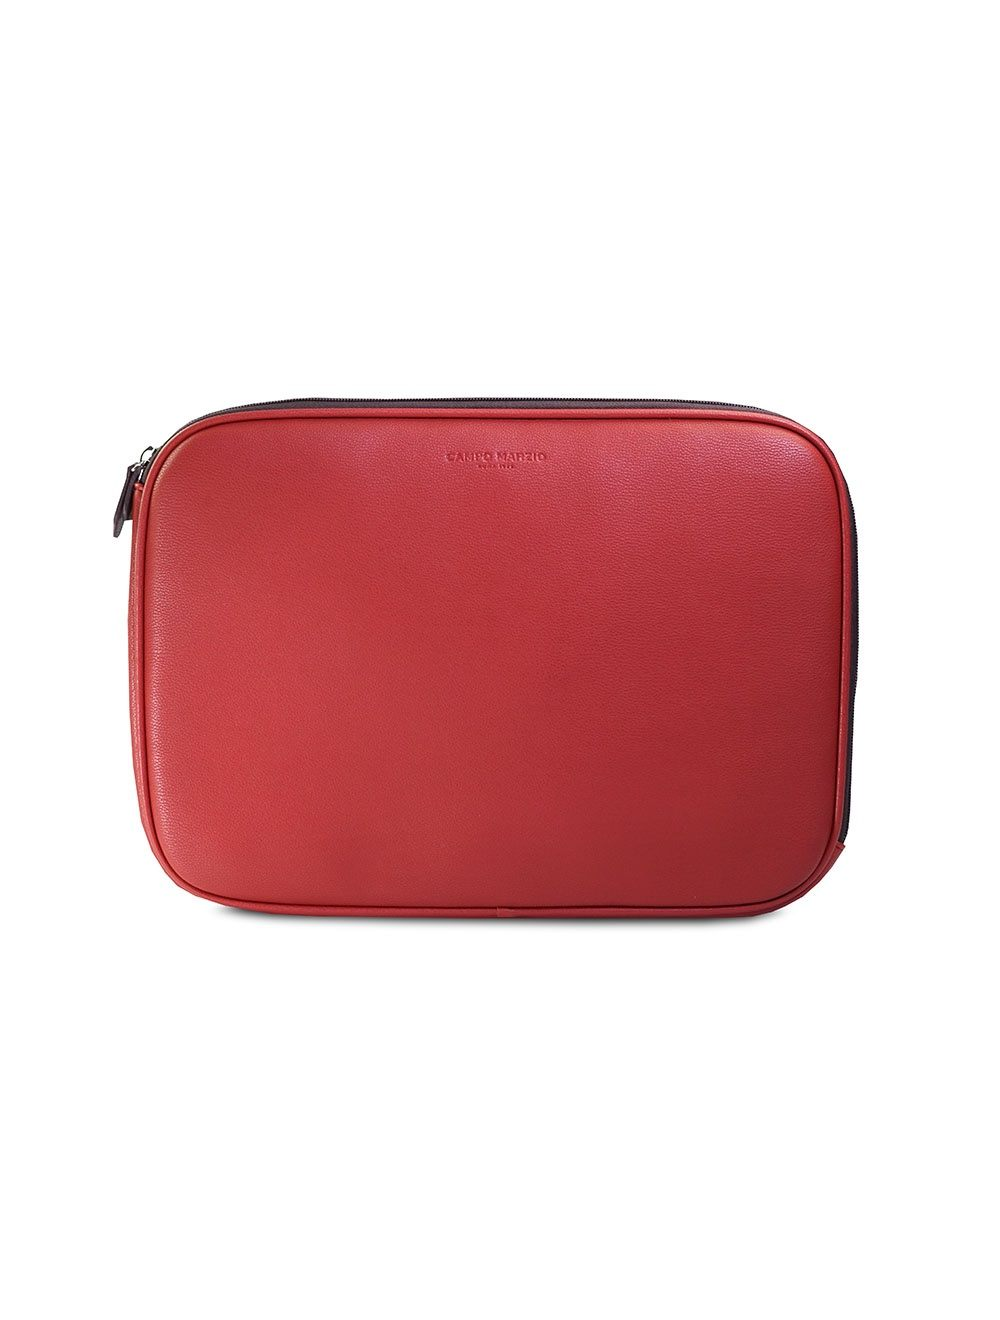 "Laptop Sleeve 13"" - Cherry Red"